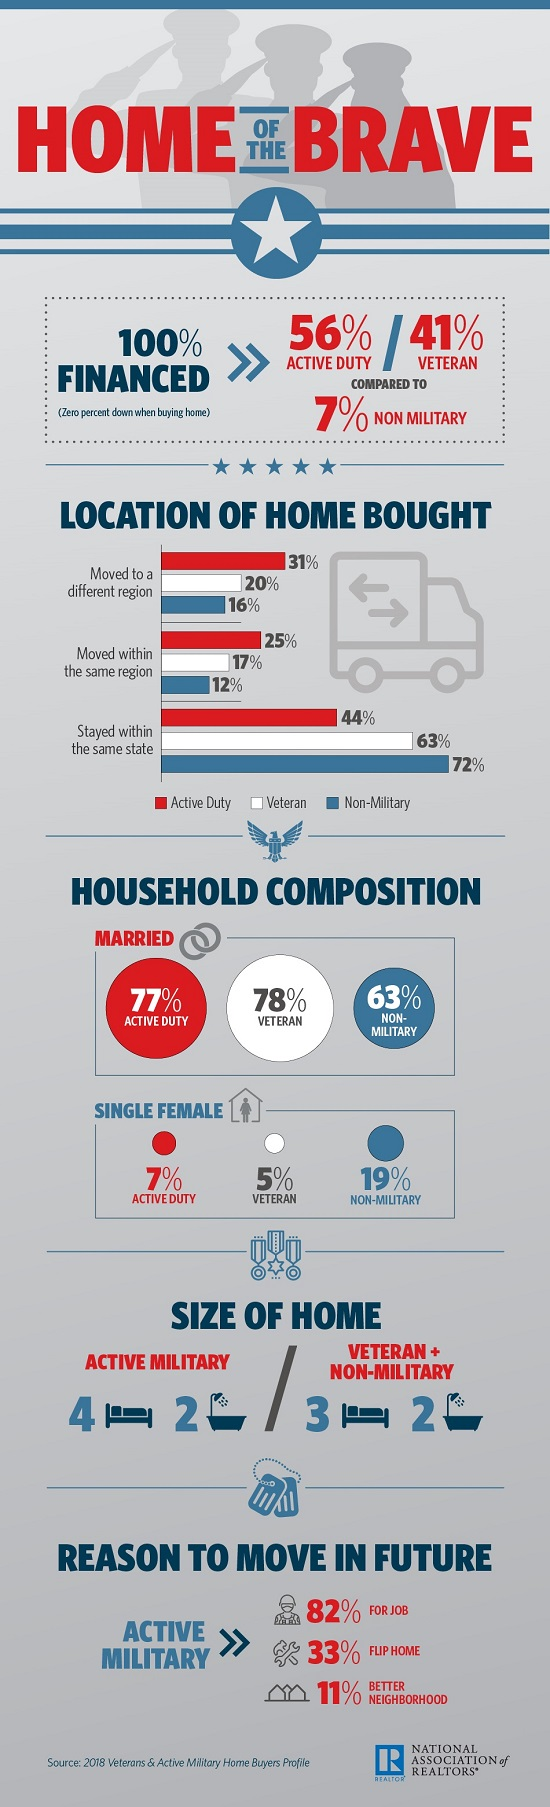 NAR_Military_Buyers_Survey_5-25-18